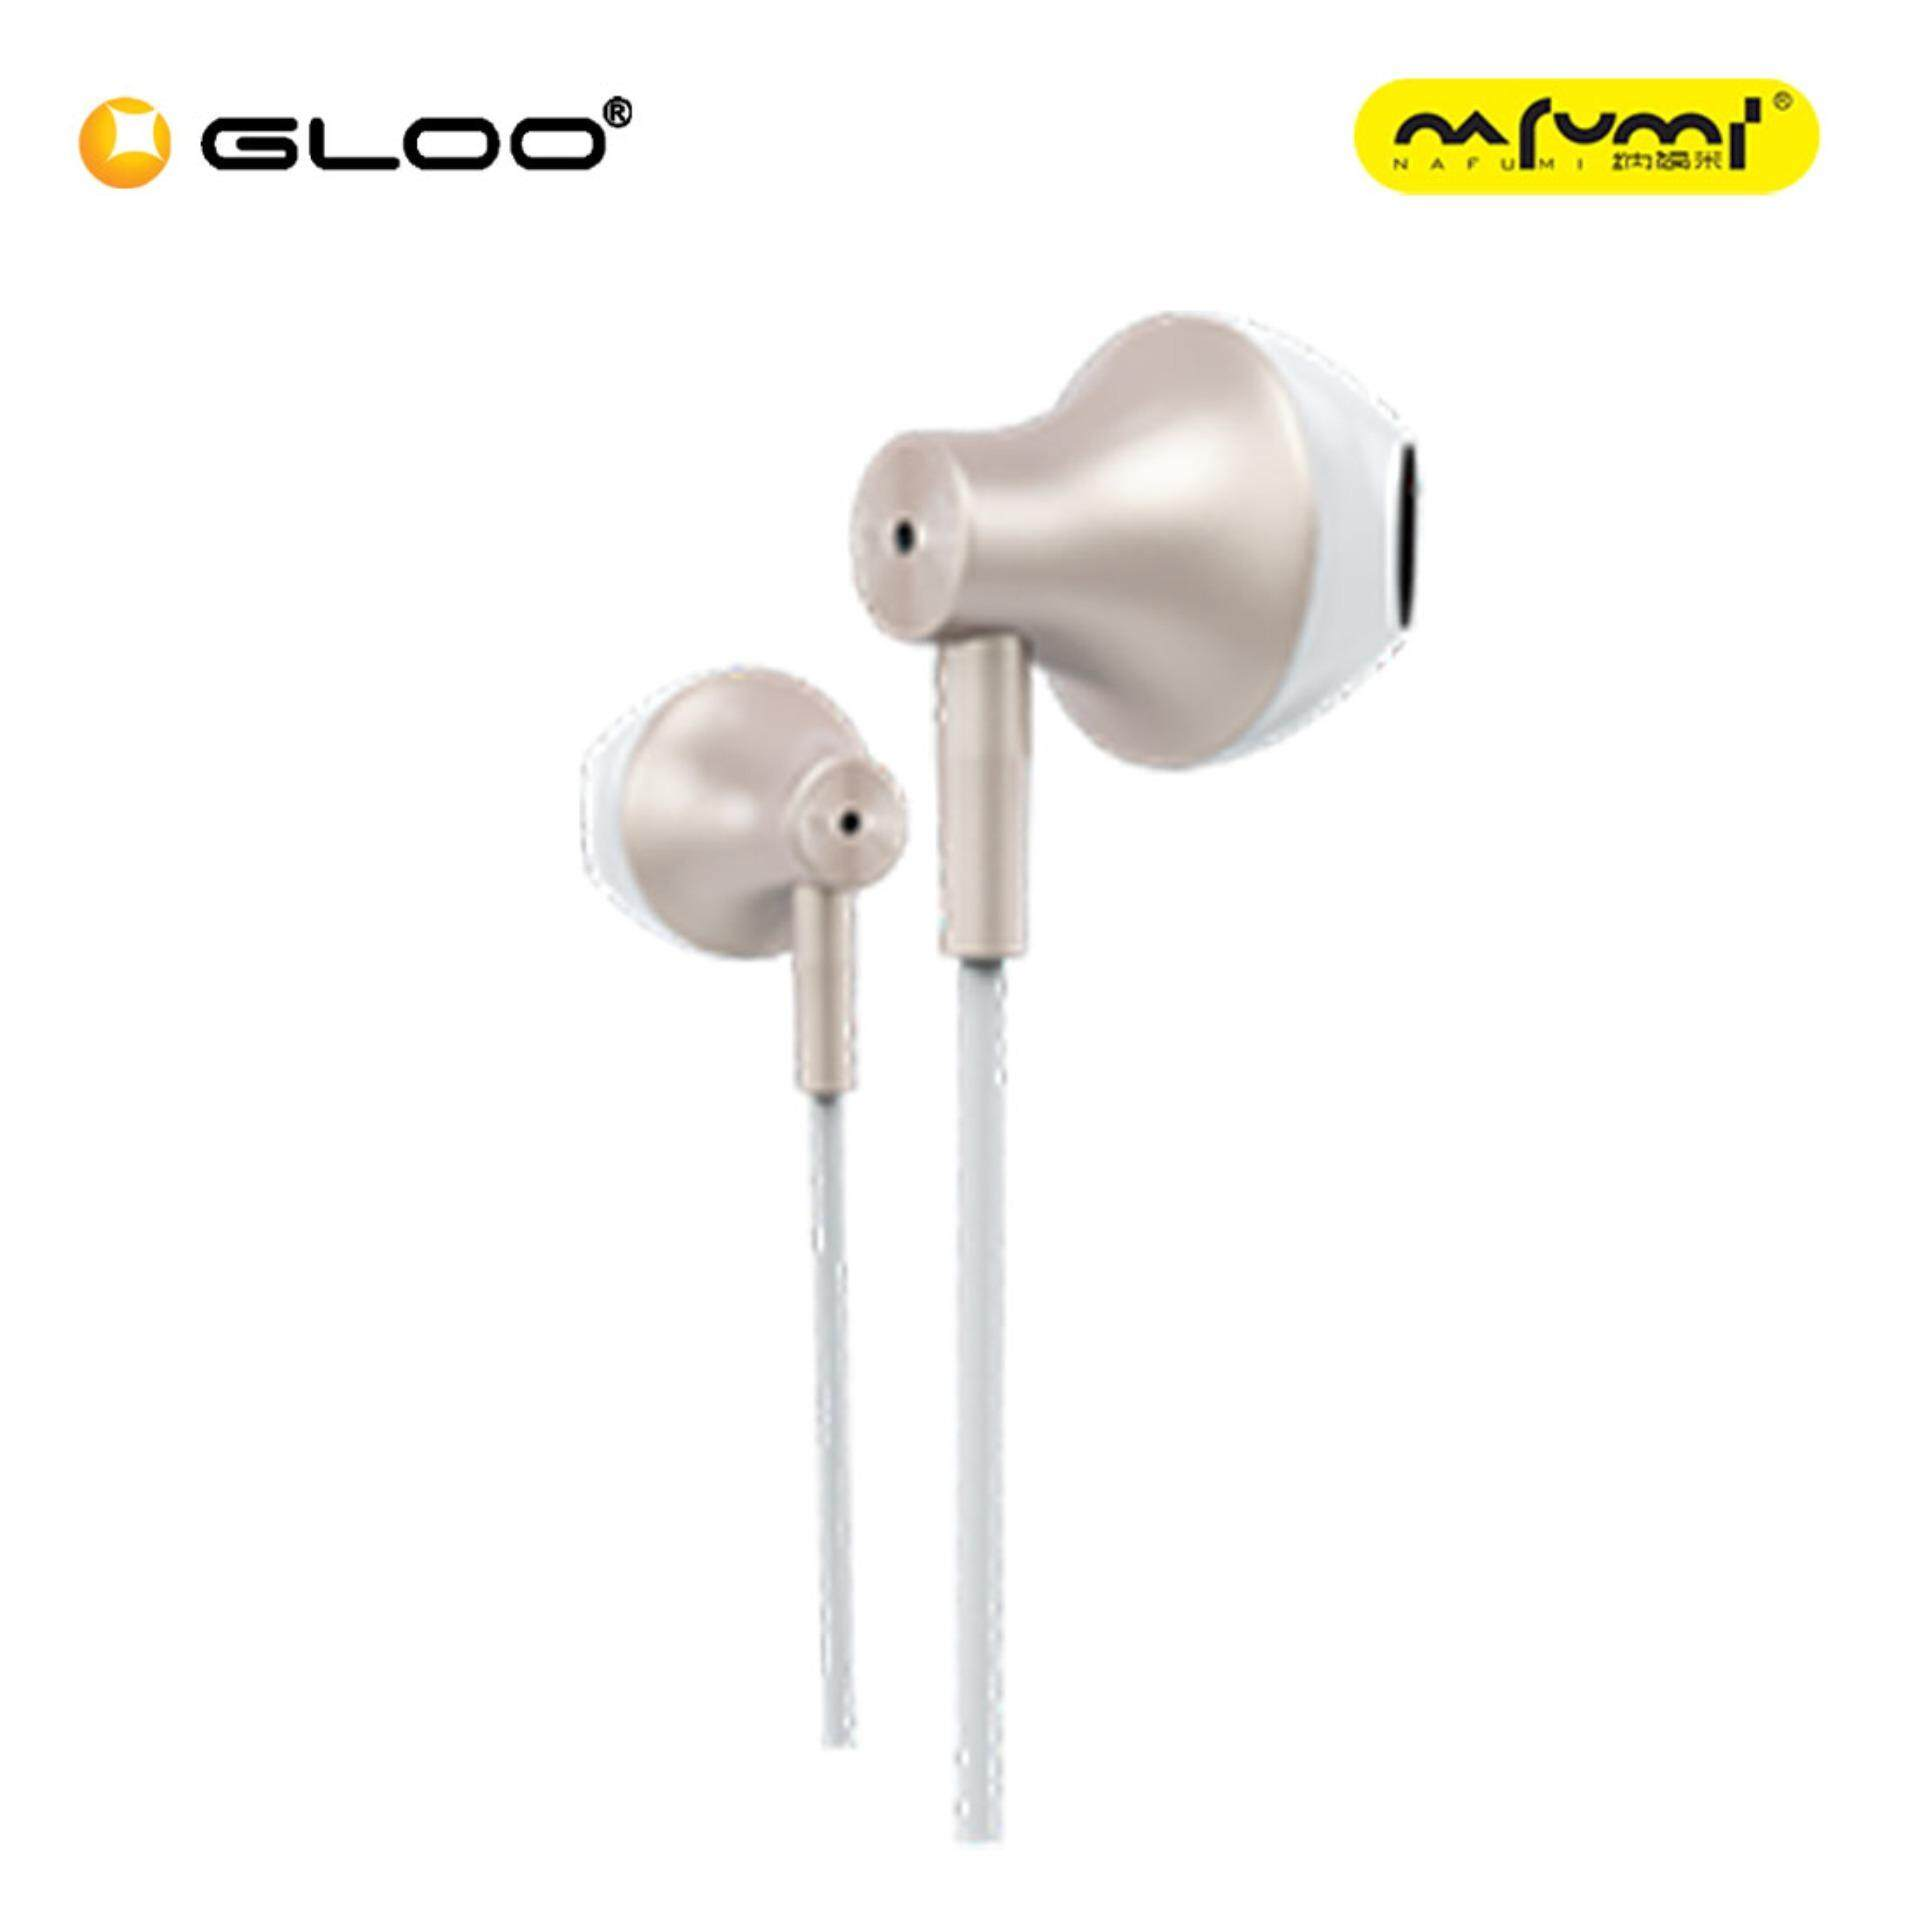 Nafumi X6 Earpiece (Gold)